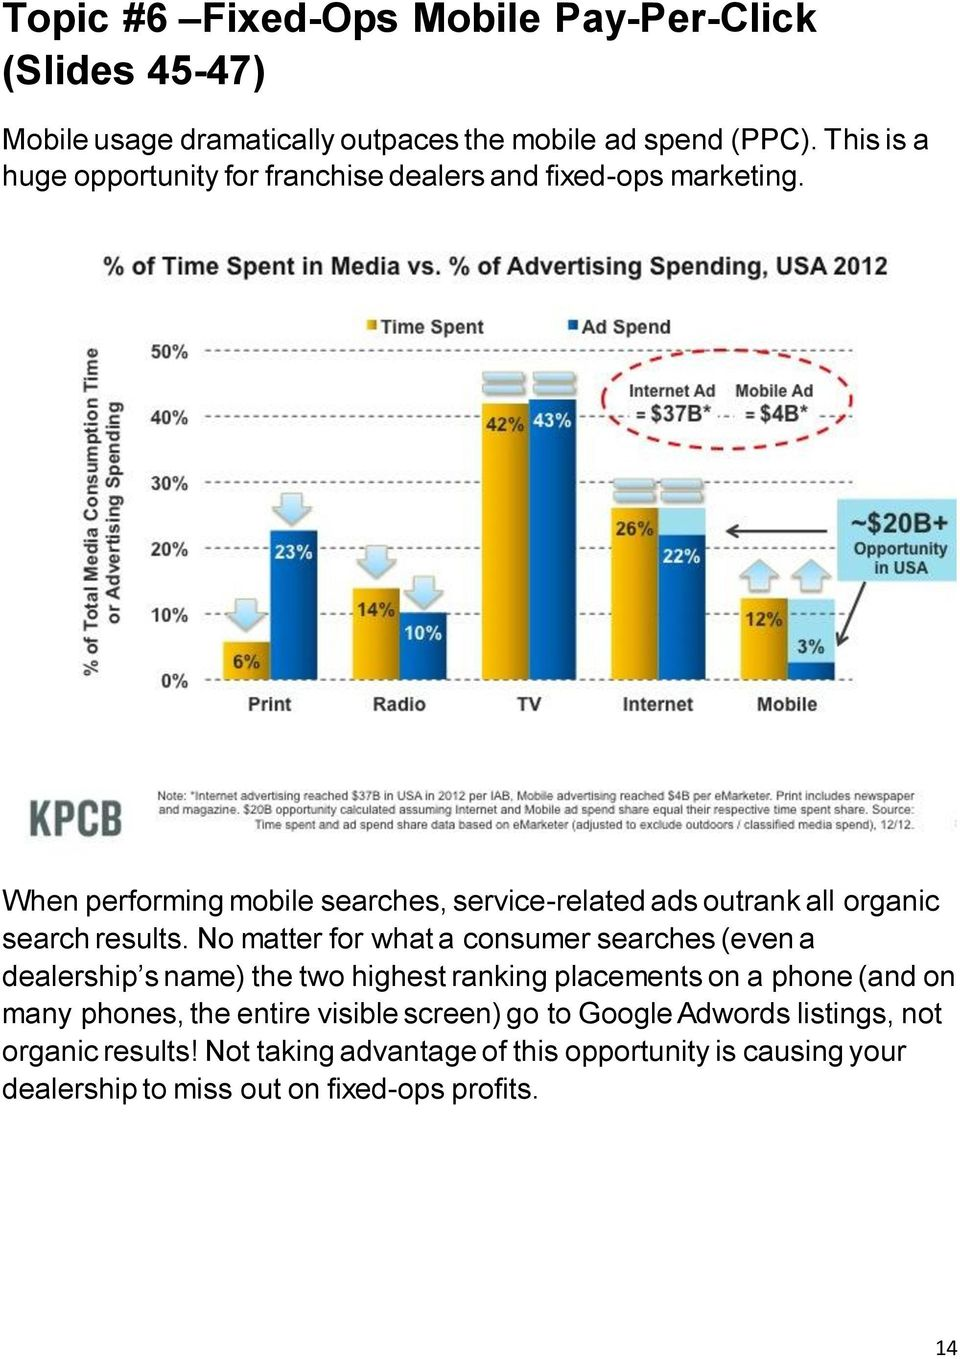 When performing mobile searches, service-related ads outrank all organic search results.